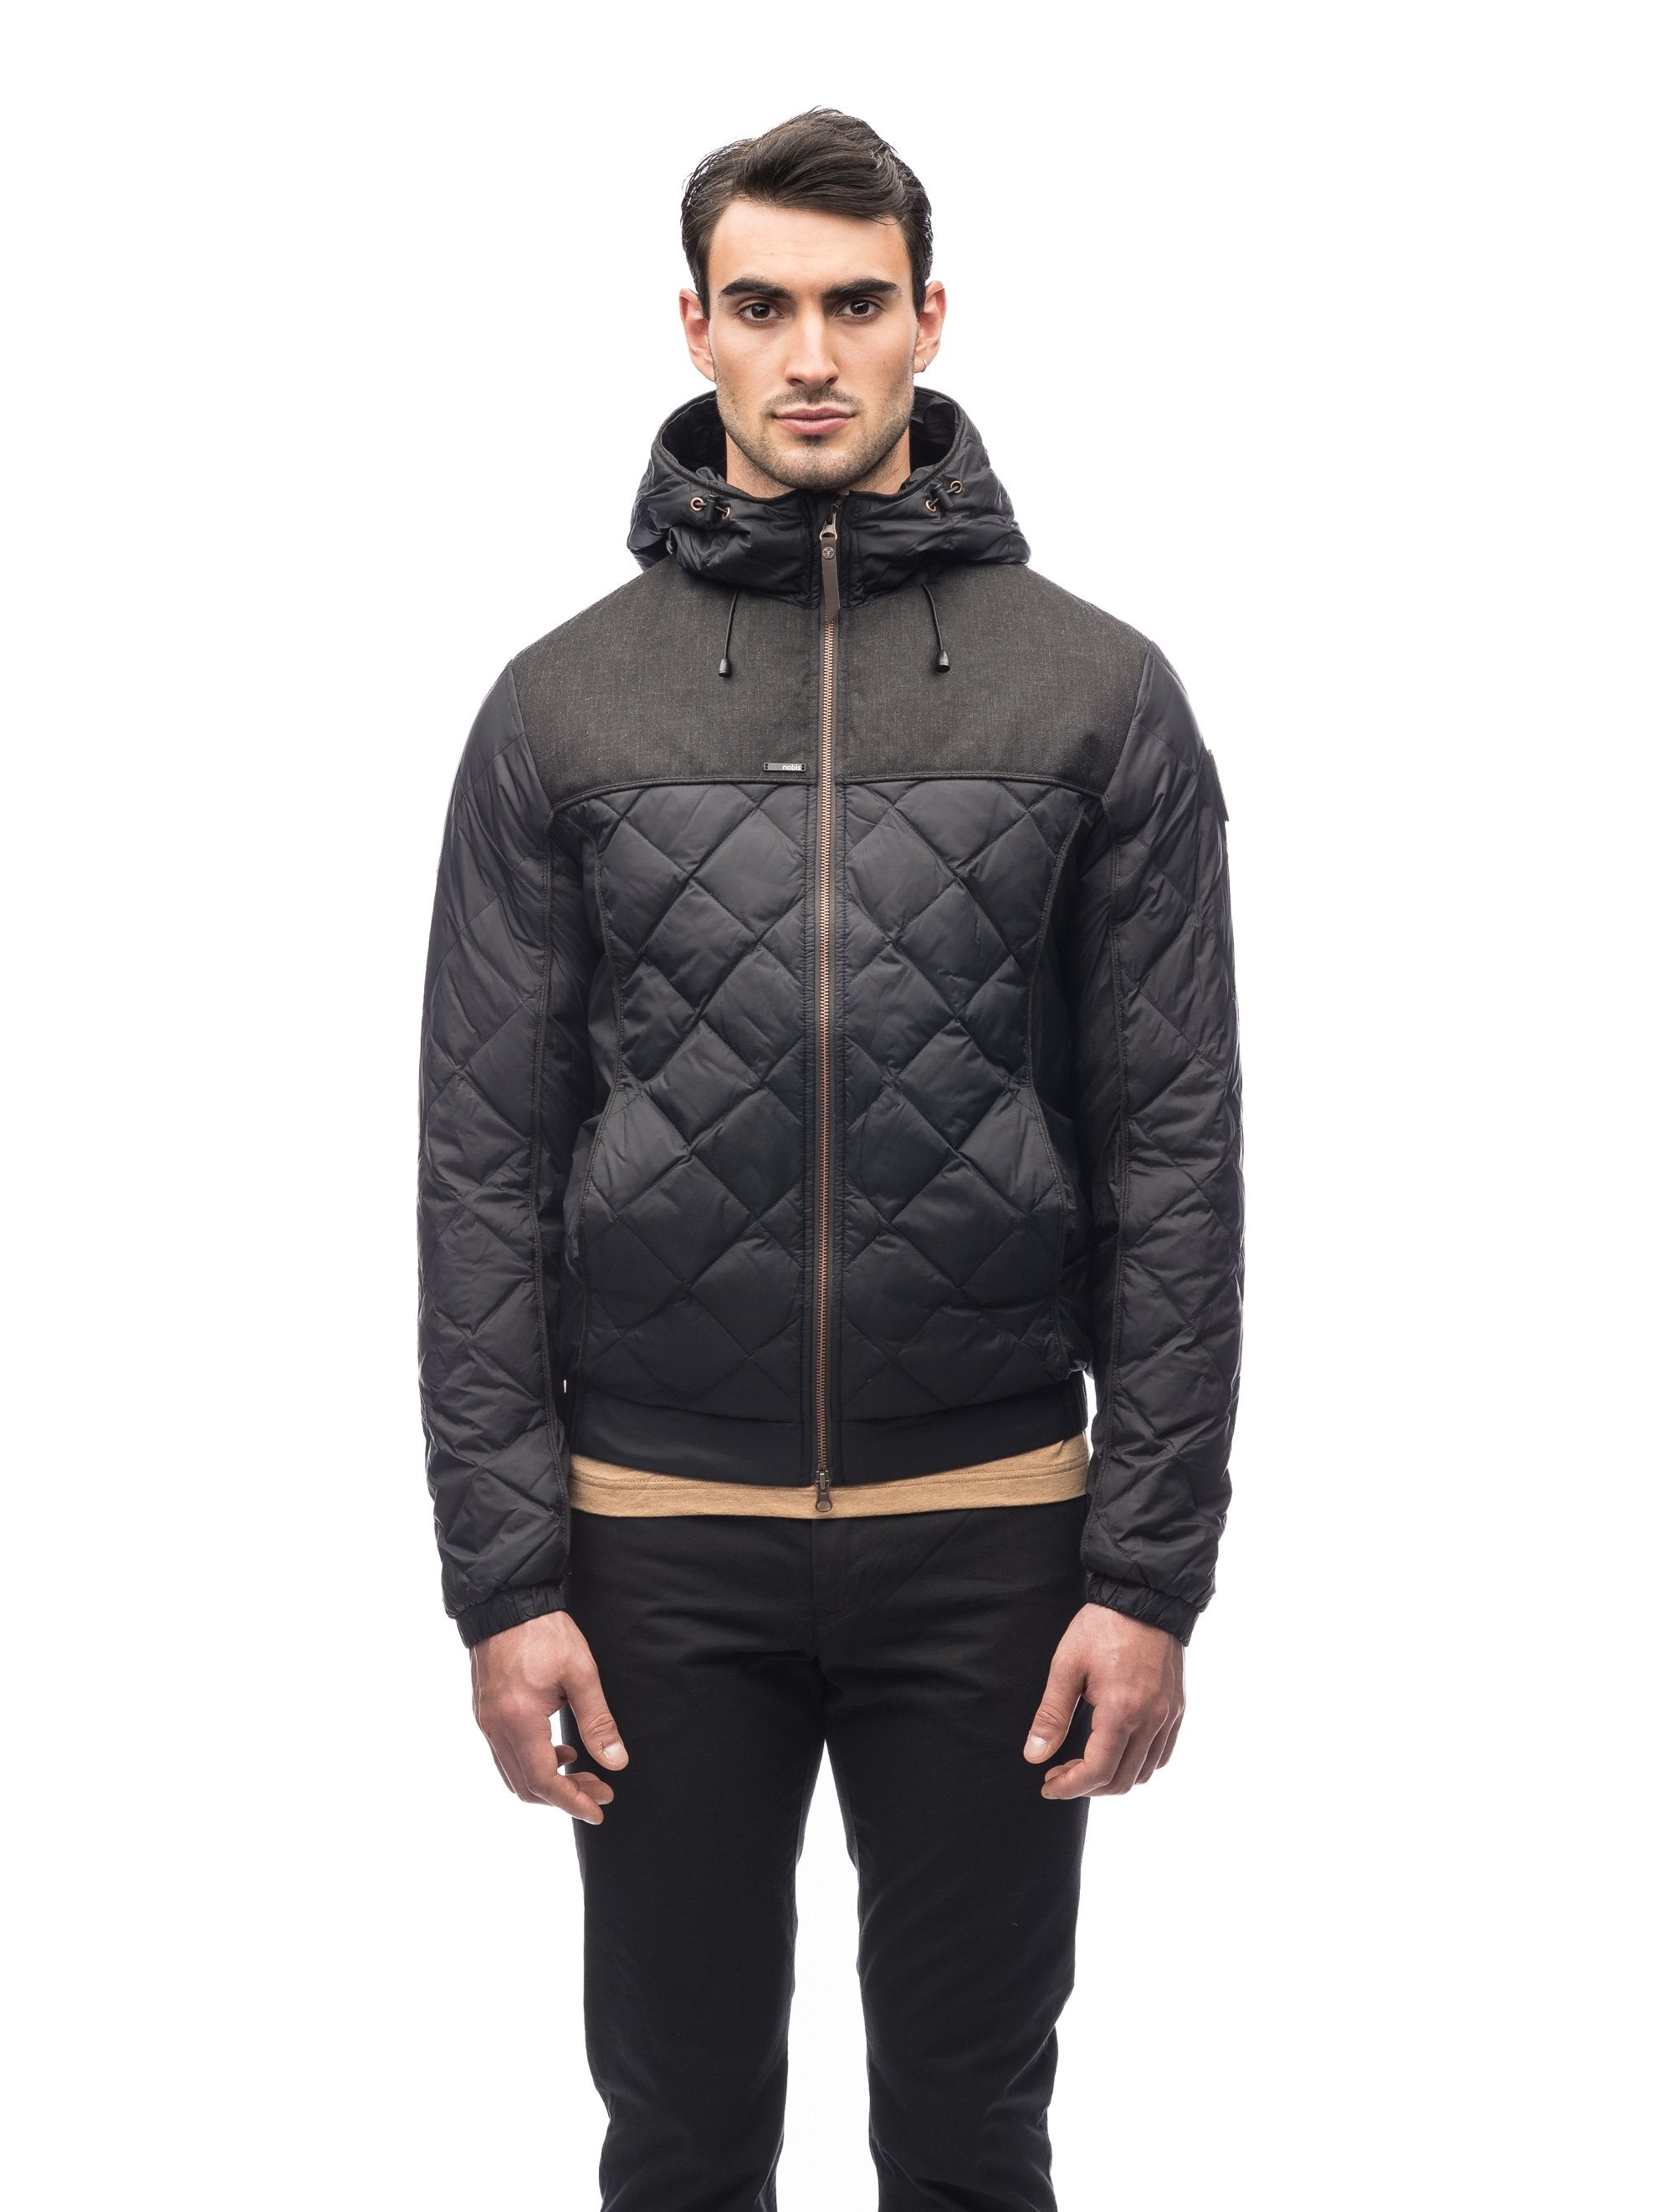 Men's lightweight quilted down hoodie in Black/H. Black | color